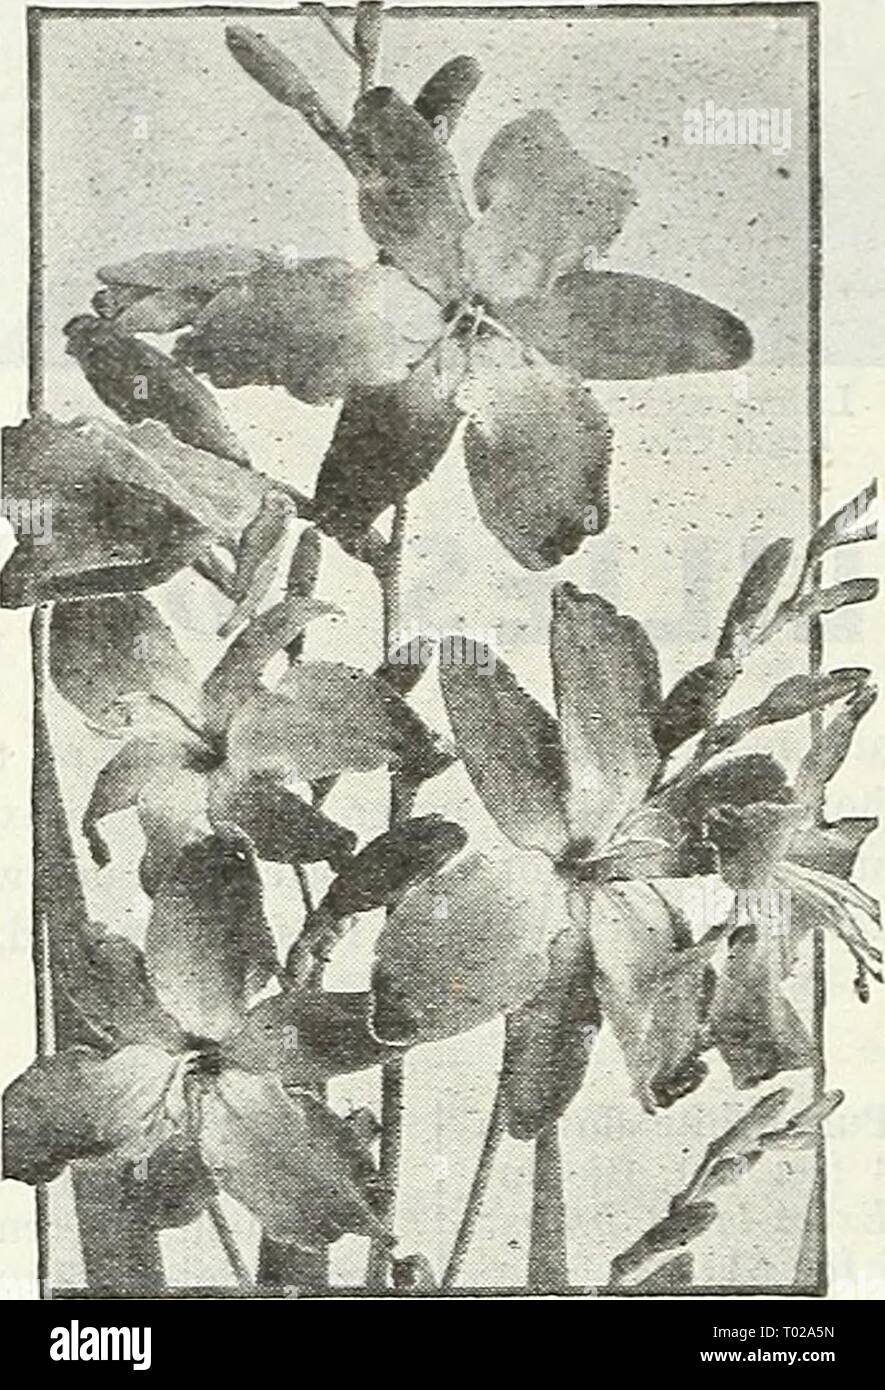 Dreer's garden book for 1947 . dreersgardenbook1947henr Year: 1947  Ismene—Peruvian Daffodil Ismene Peruvian Daffodil 47-082 Calathina. Large, fragrant, Amaryllis-lilce white blooms with apple-green markings in the throat. Very easy to grow in a well-drained rich soil fully exposed to the sun. Take up before fall frost. 40c each; 3 for $1.00; 12 for S3.75. Ranunculus ^ ® Showy plants delighting in a cool, moist situation and doing particularly well in a shady spot and moderately rich soil. 40-848 All-Double Giant Mixed. Includes a remarkably fine and ex- tensive color range. 3 for 35c; 12 for  - Stock Image